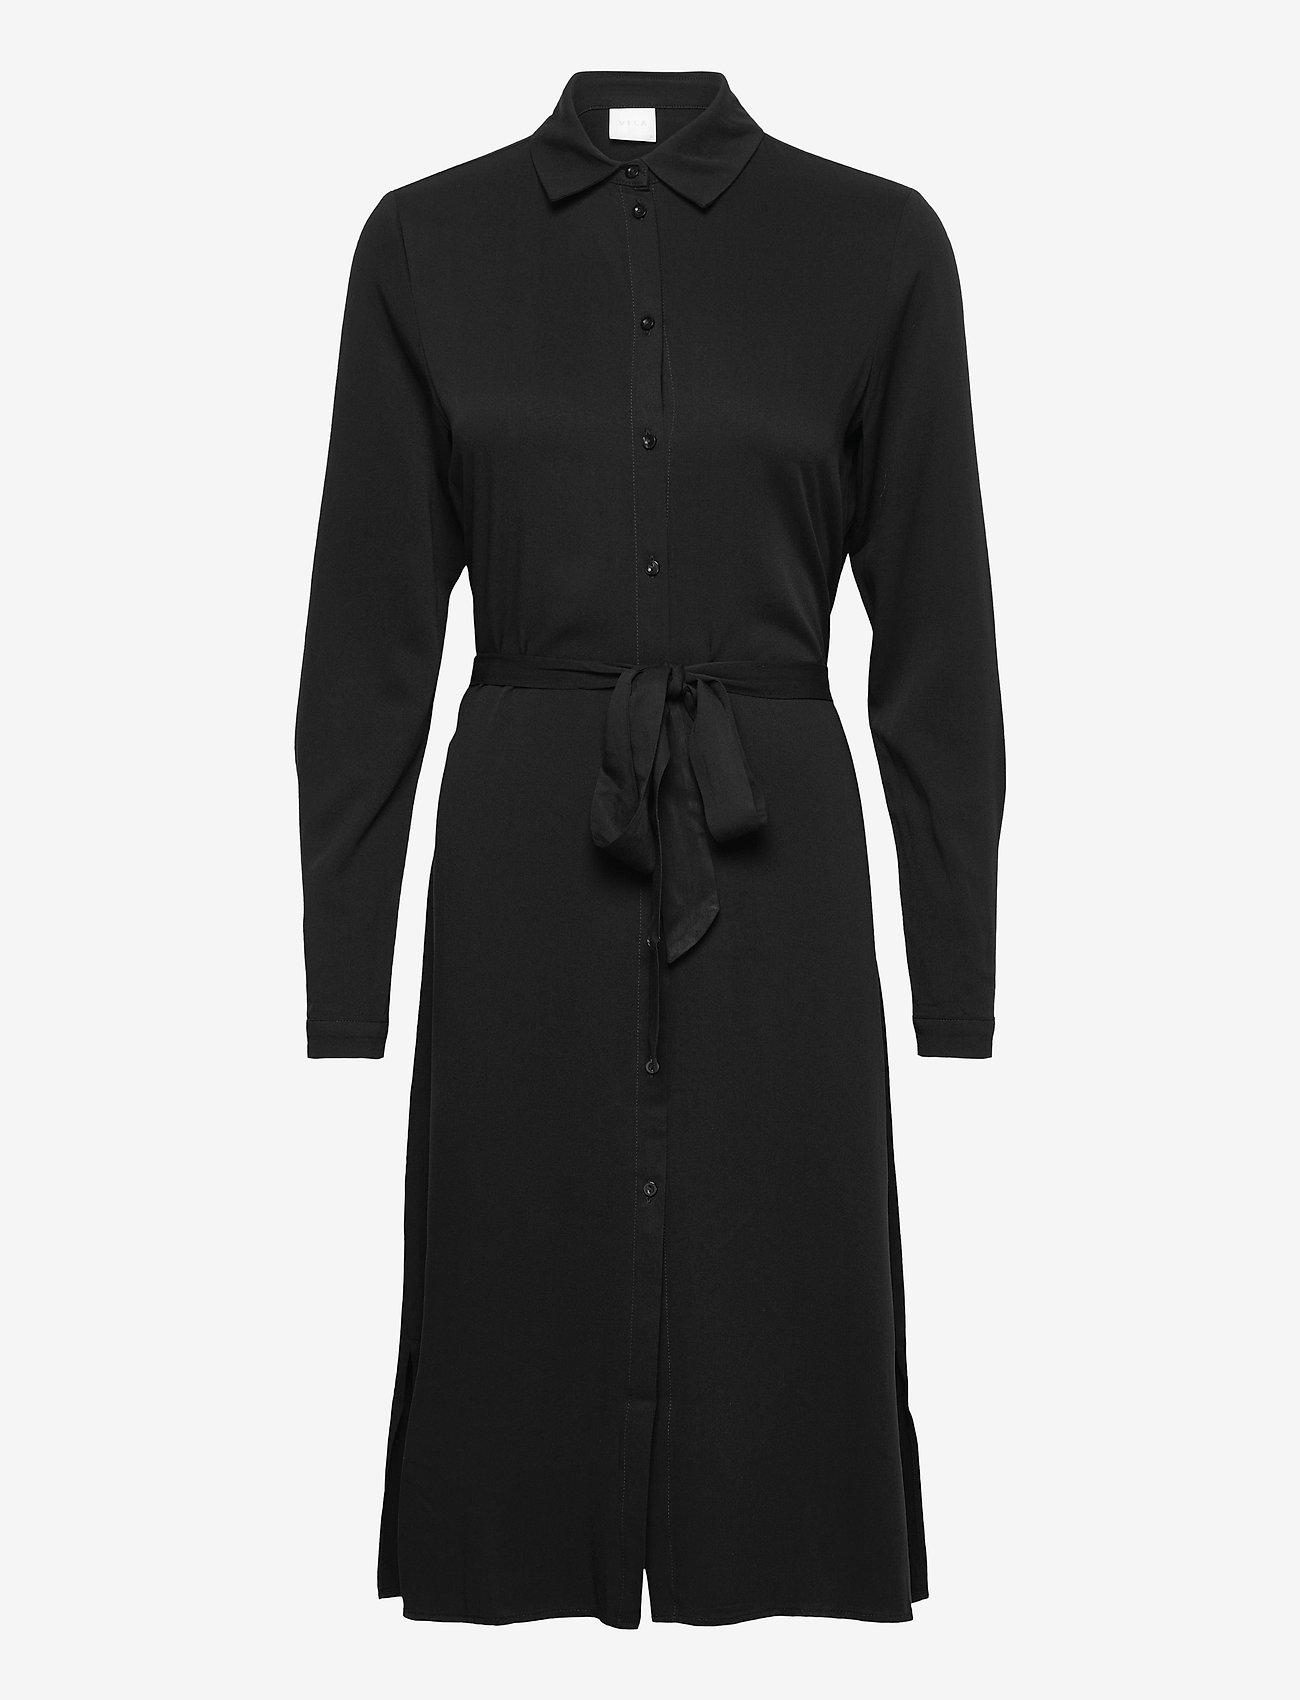 Vila - VIDANIA BELT L/S SHIRT DRESS/SU - - alledaagse jurken - black - 0